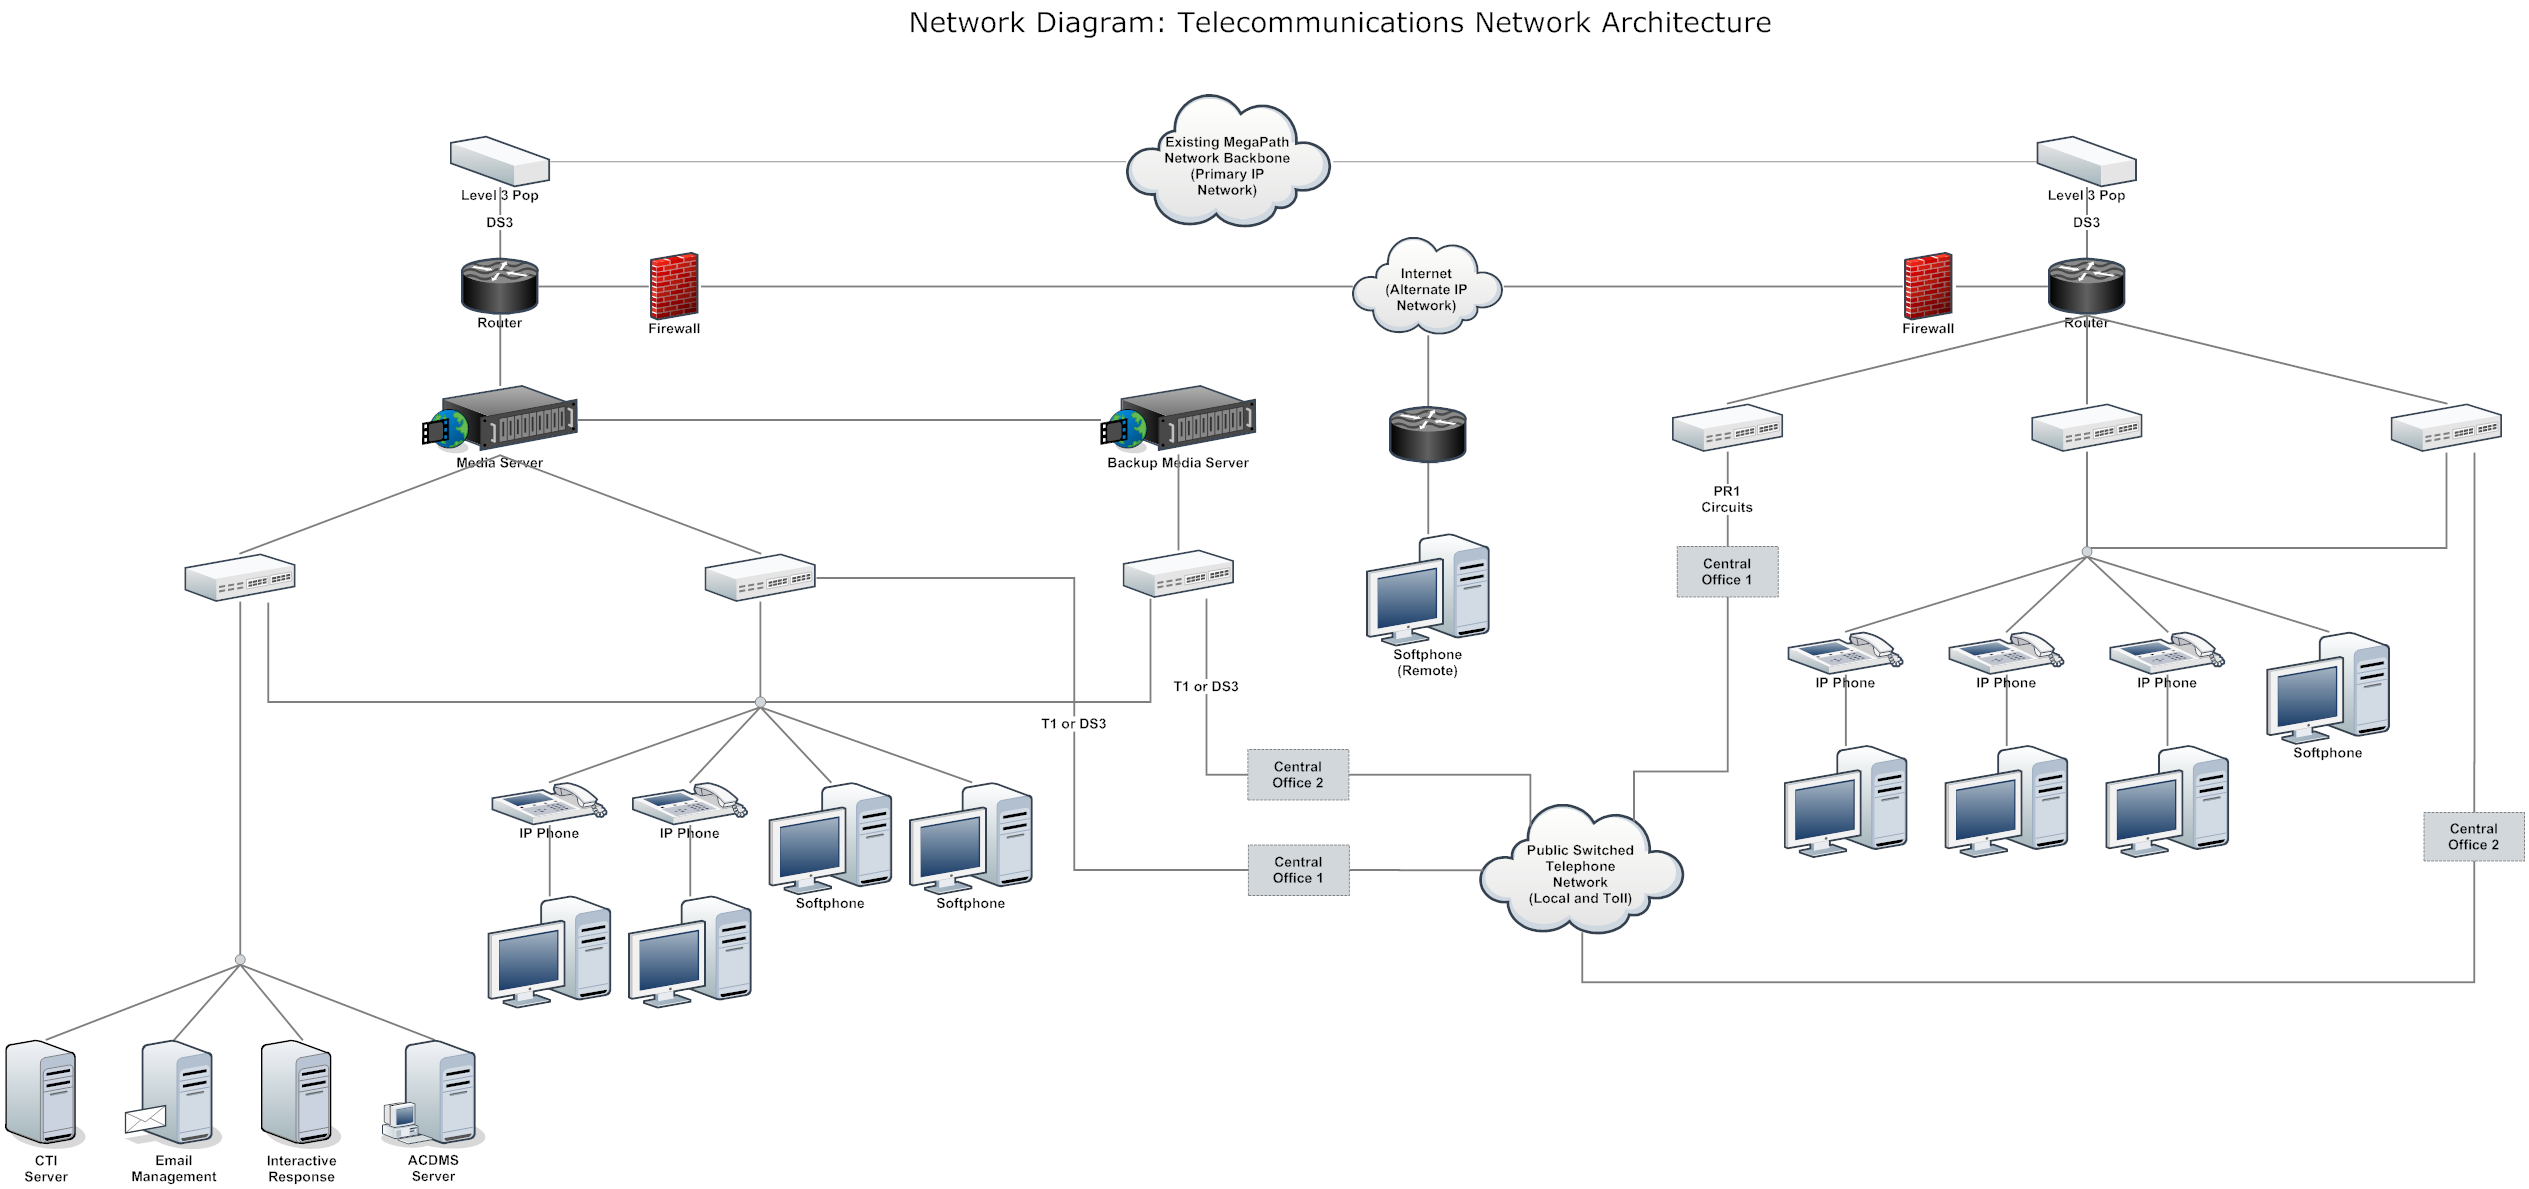 17 Best images about Network Diagrams on Pinterest | Perspective ...